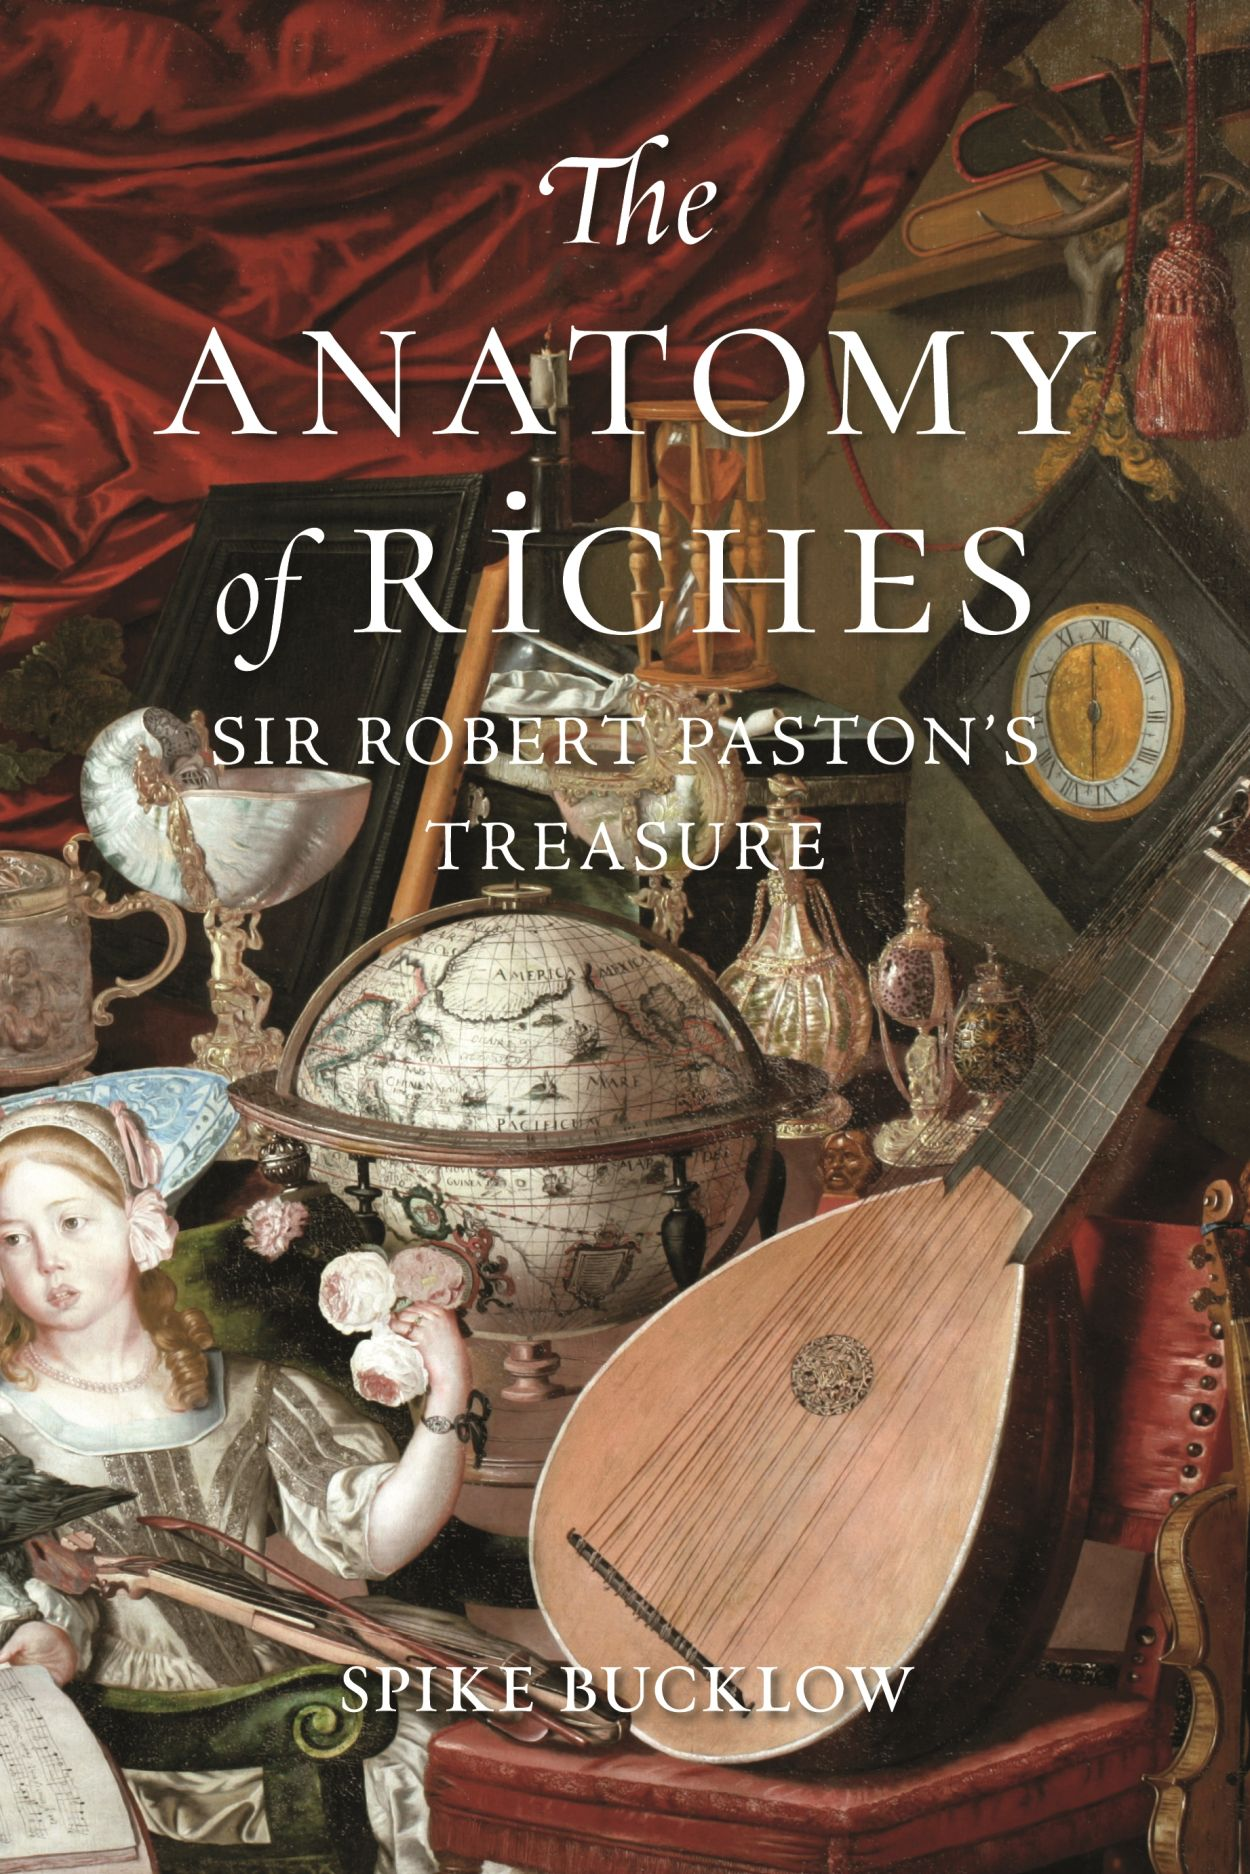 The Anatomy of Riches